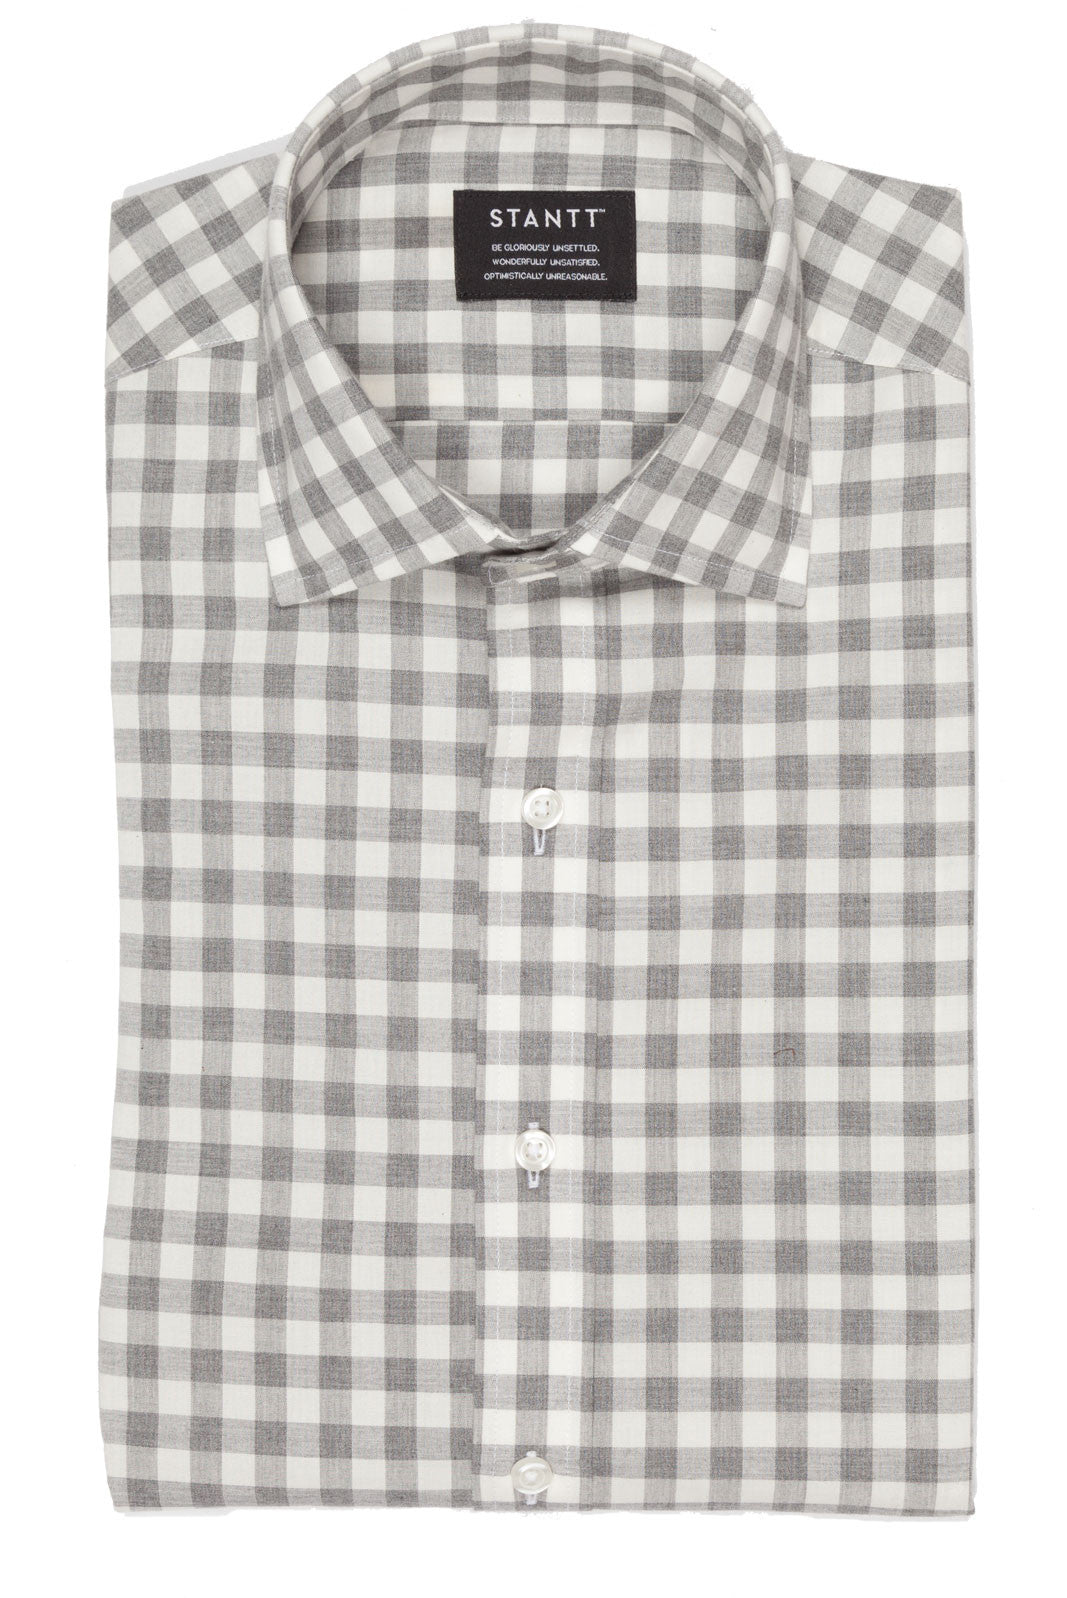 Grey Heather Gingham: Semi-Spread Collar, Barrel Cuff